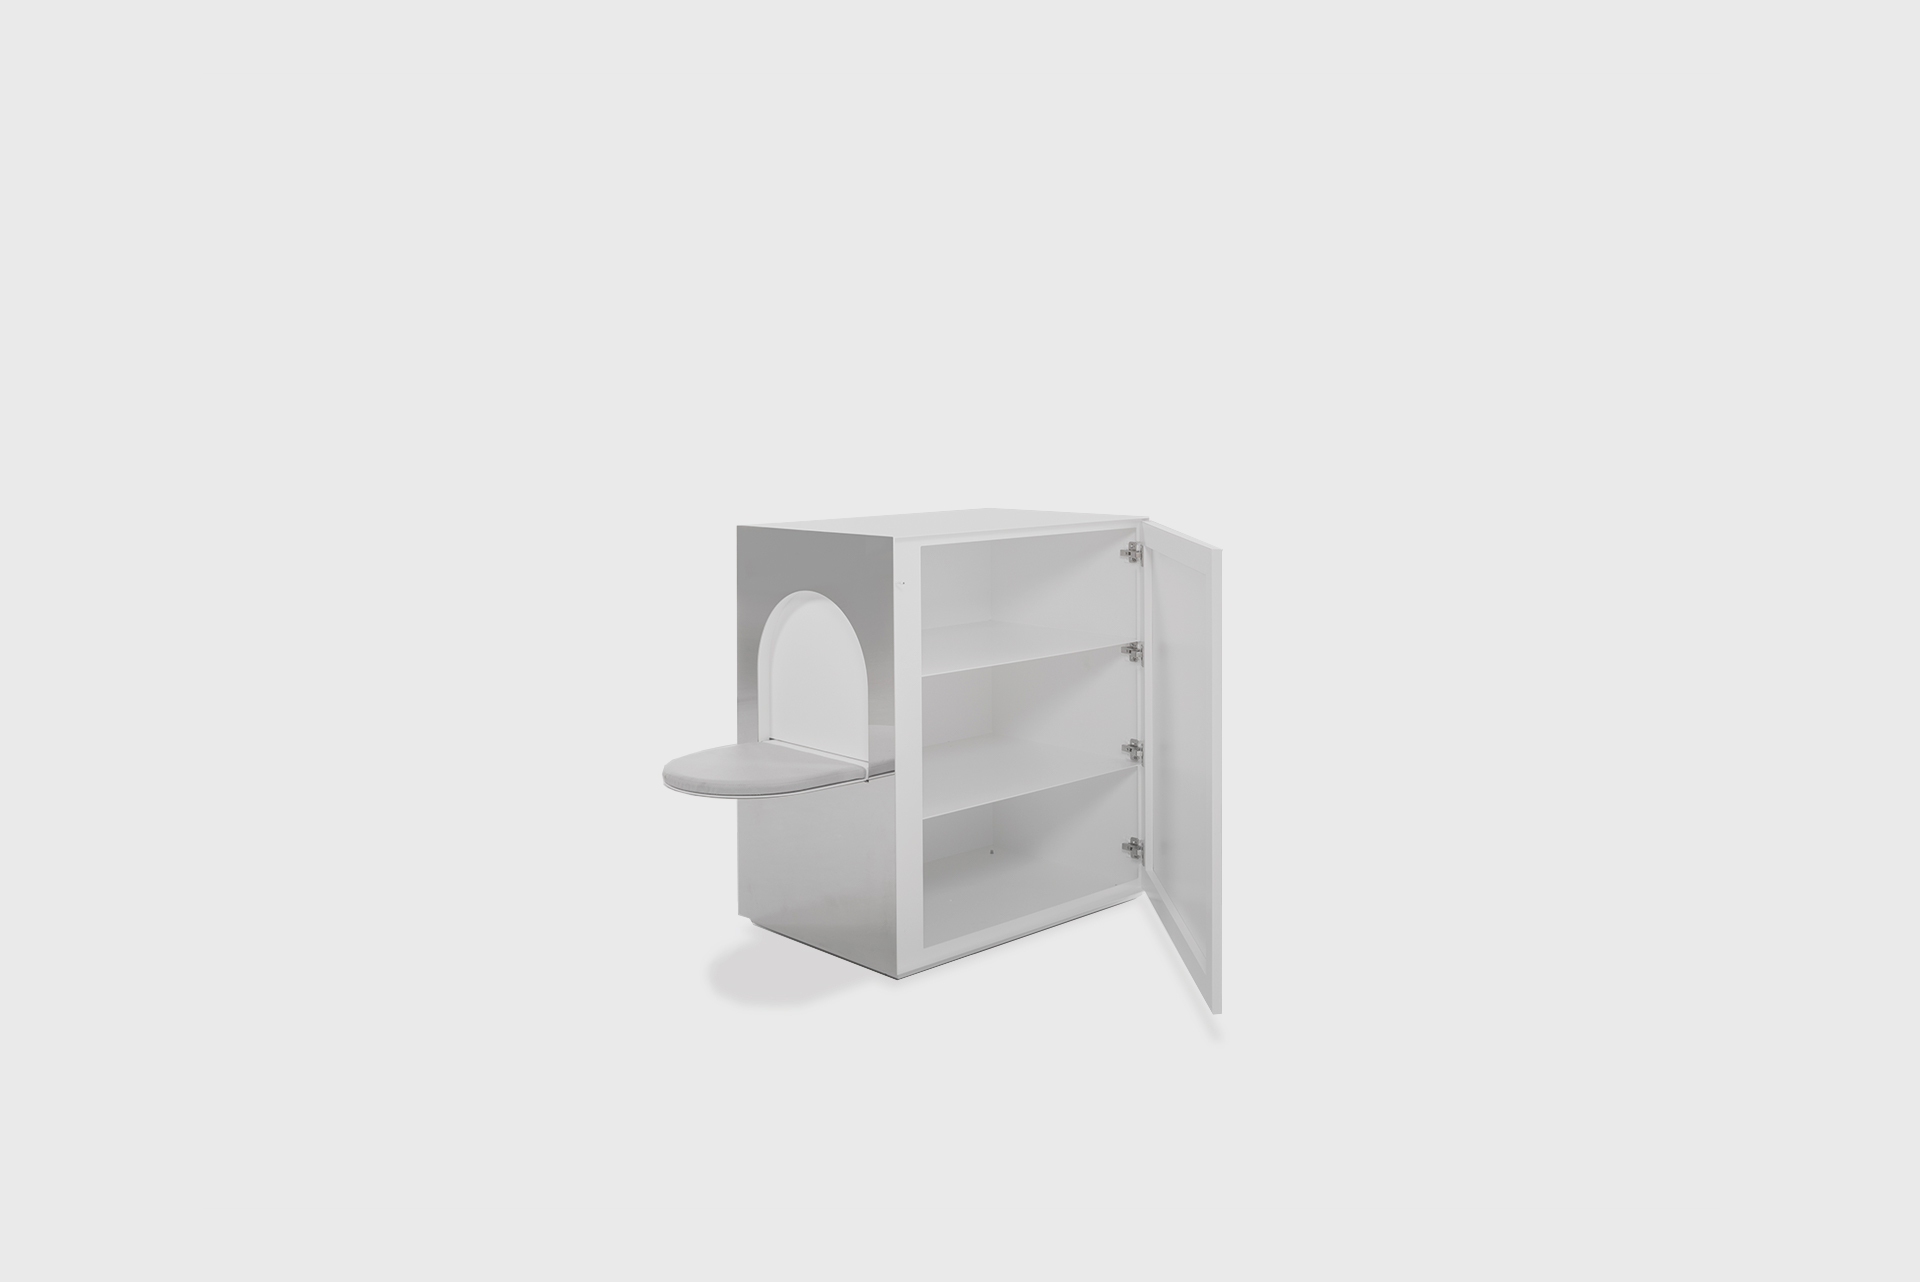 """Buffet Seat From the series """"Beasts"""" Produced in exclusive for SIDE GALLERY Manufactured by ERTL und ZULL Berlin, 2021 White powder-coated steel, mirror, upholstery"""